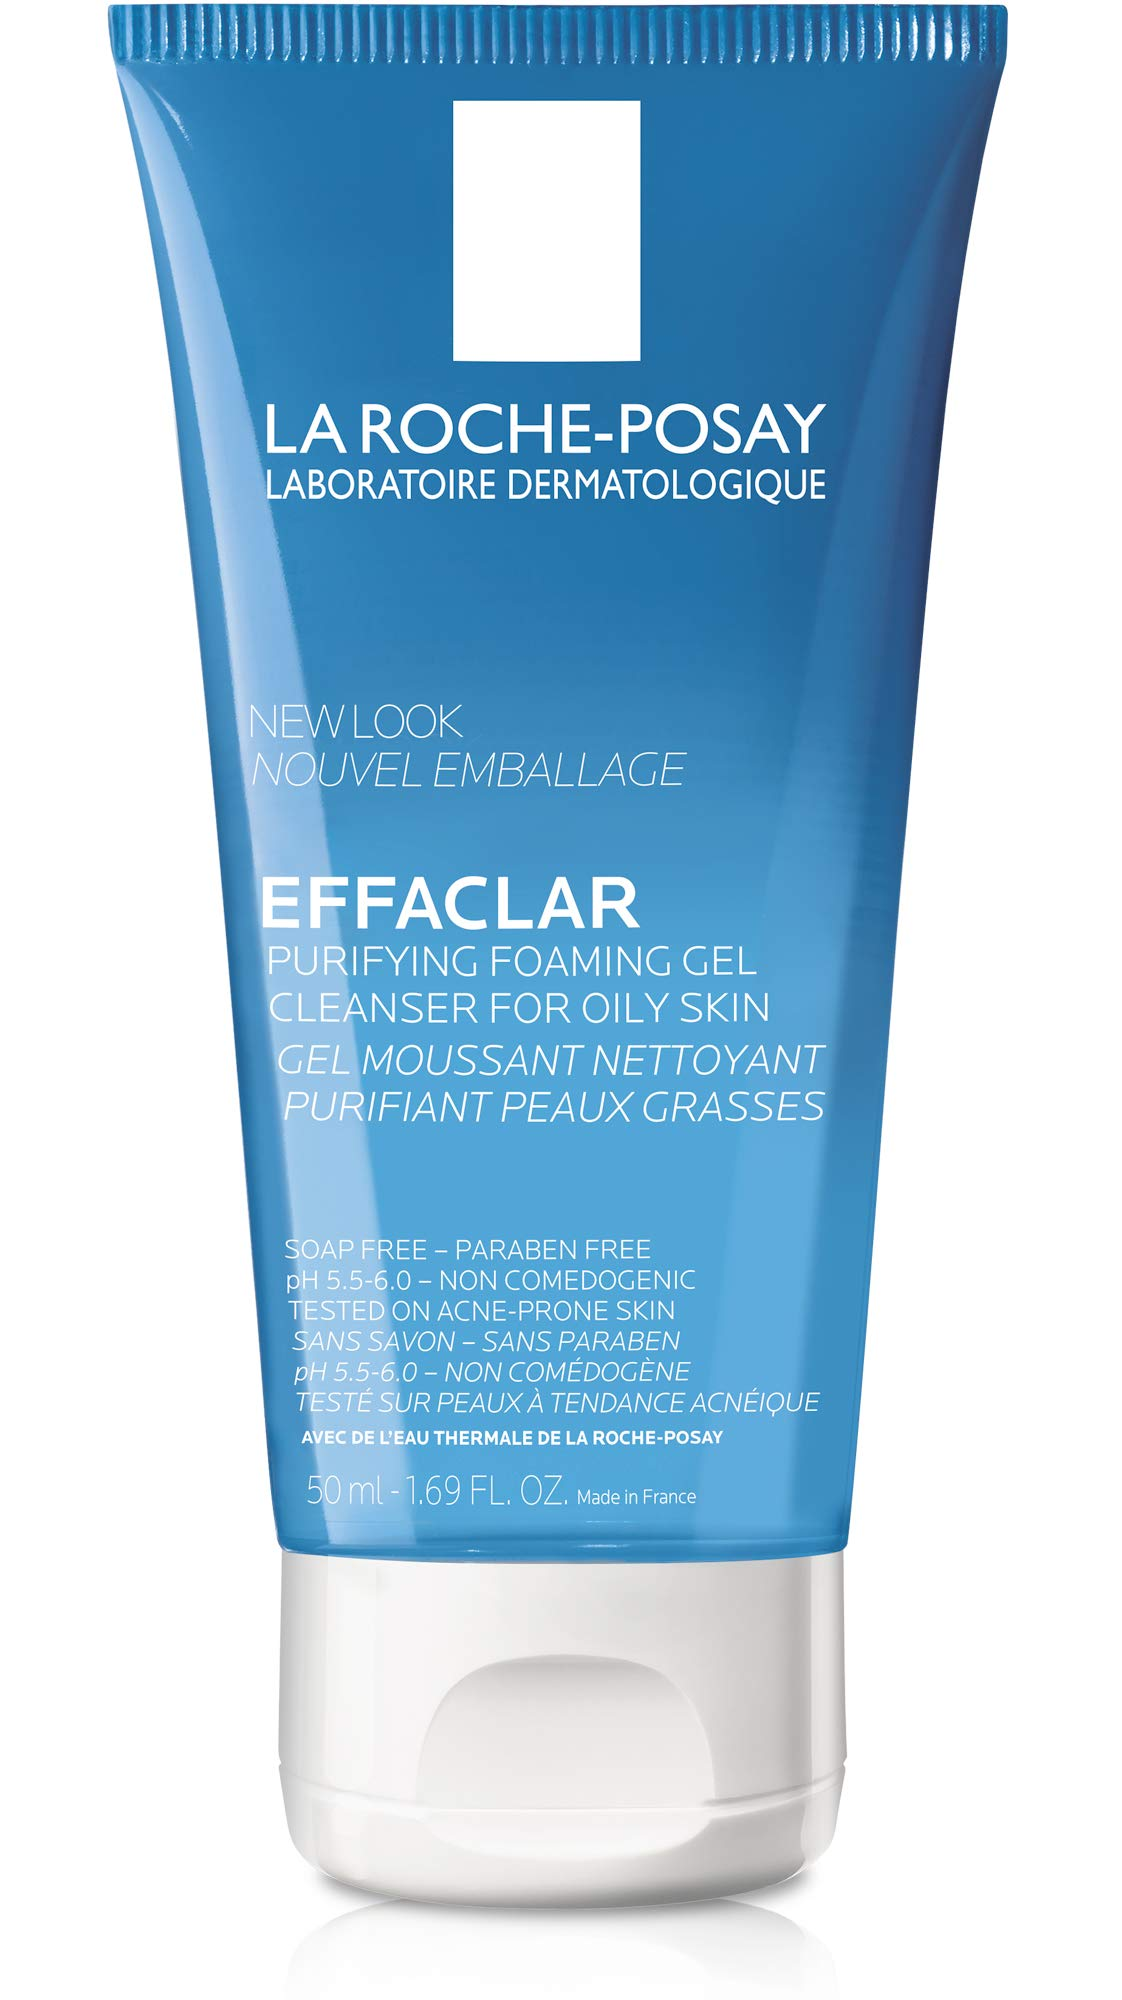 La Roche-Posay Effaclar Purifying Foaming Gel Cleanser for Oily Skin